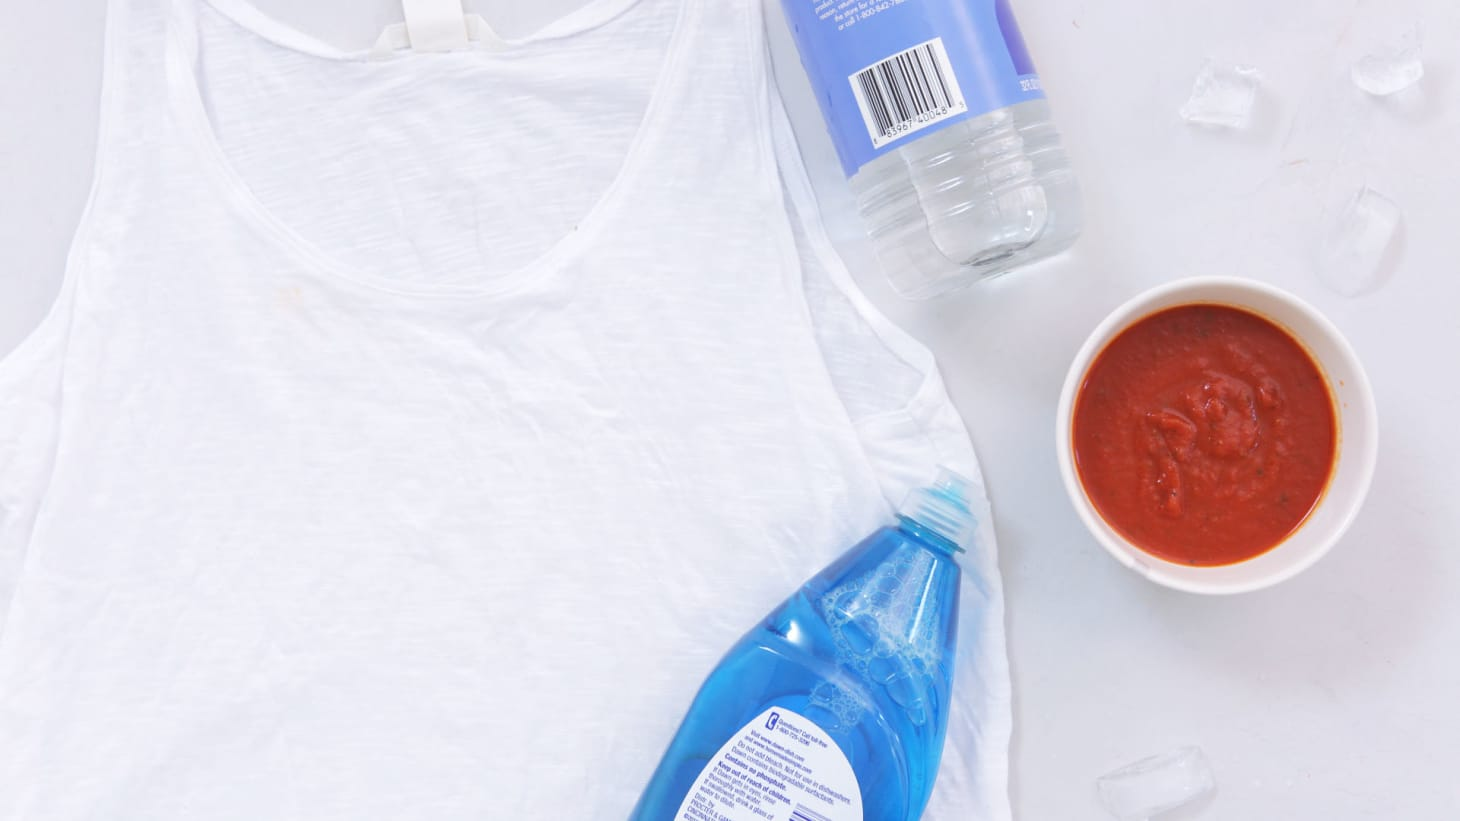 How to Remove Tomato Sauce Stains from Clothes: 3 Home Hacks, Tested